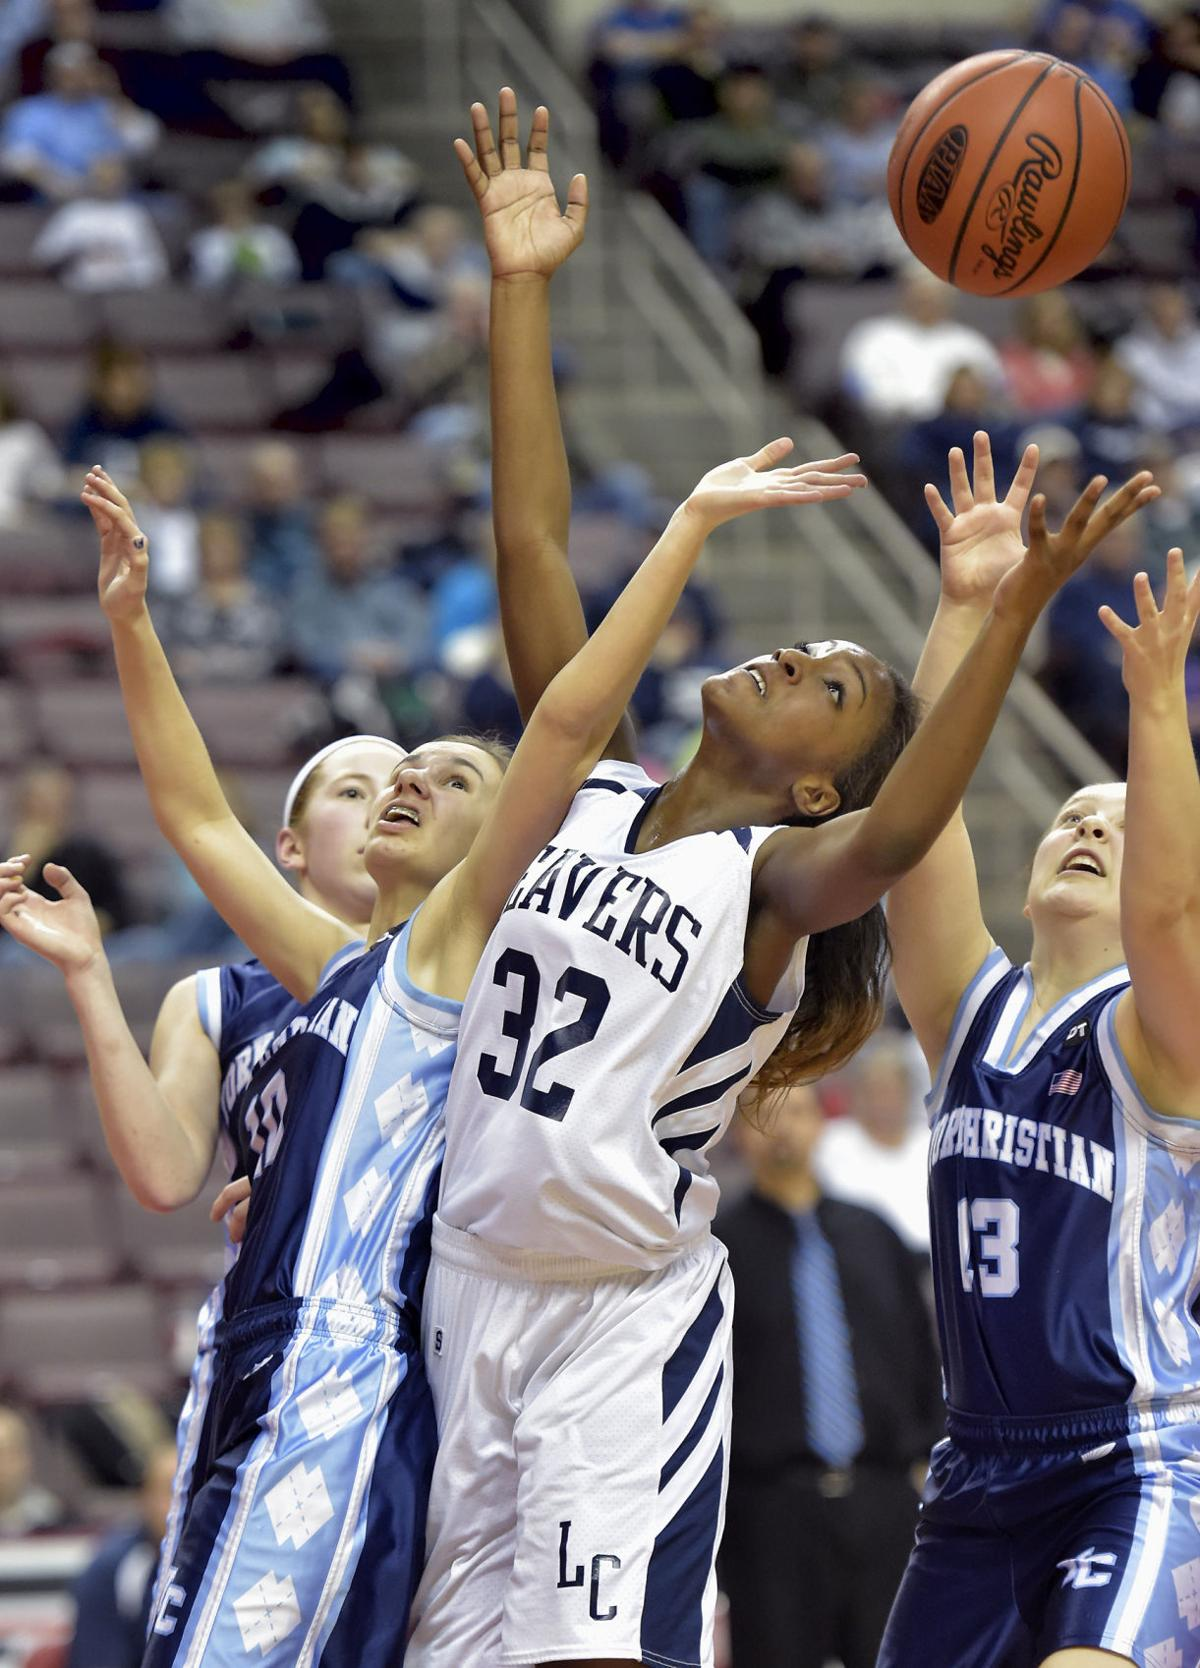 lebanon single catholic girls Hershey, pa - it took 22 years, but the lebanon catholic girls basketball team finally brought home the third state title in school history, beating juniata valley, 55-43, in the 1a state final friday afternoon.